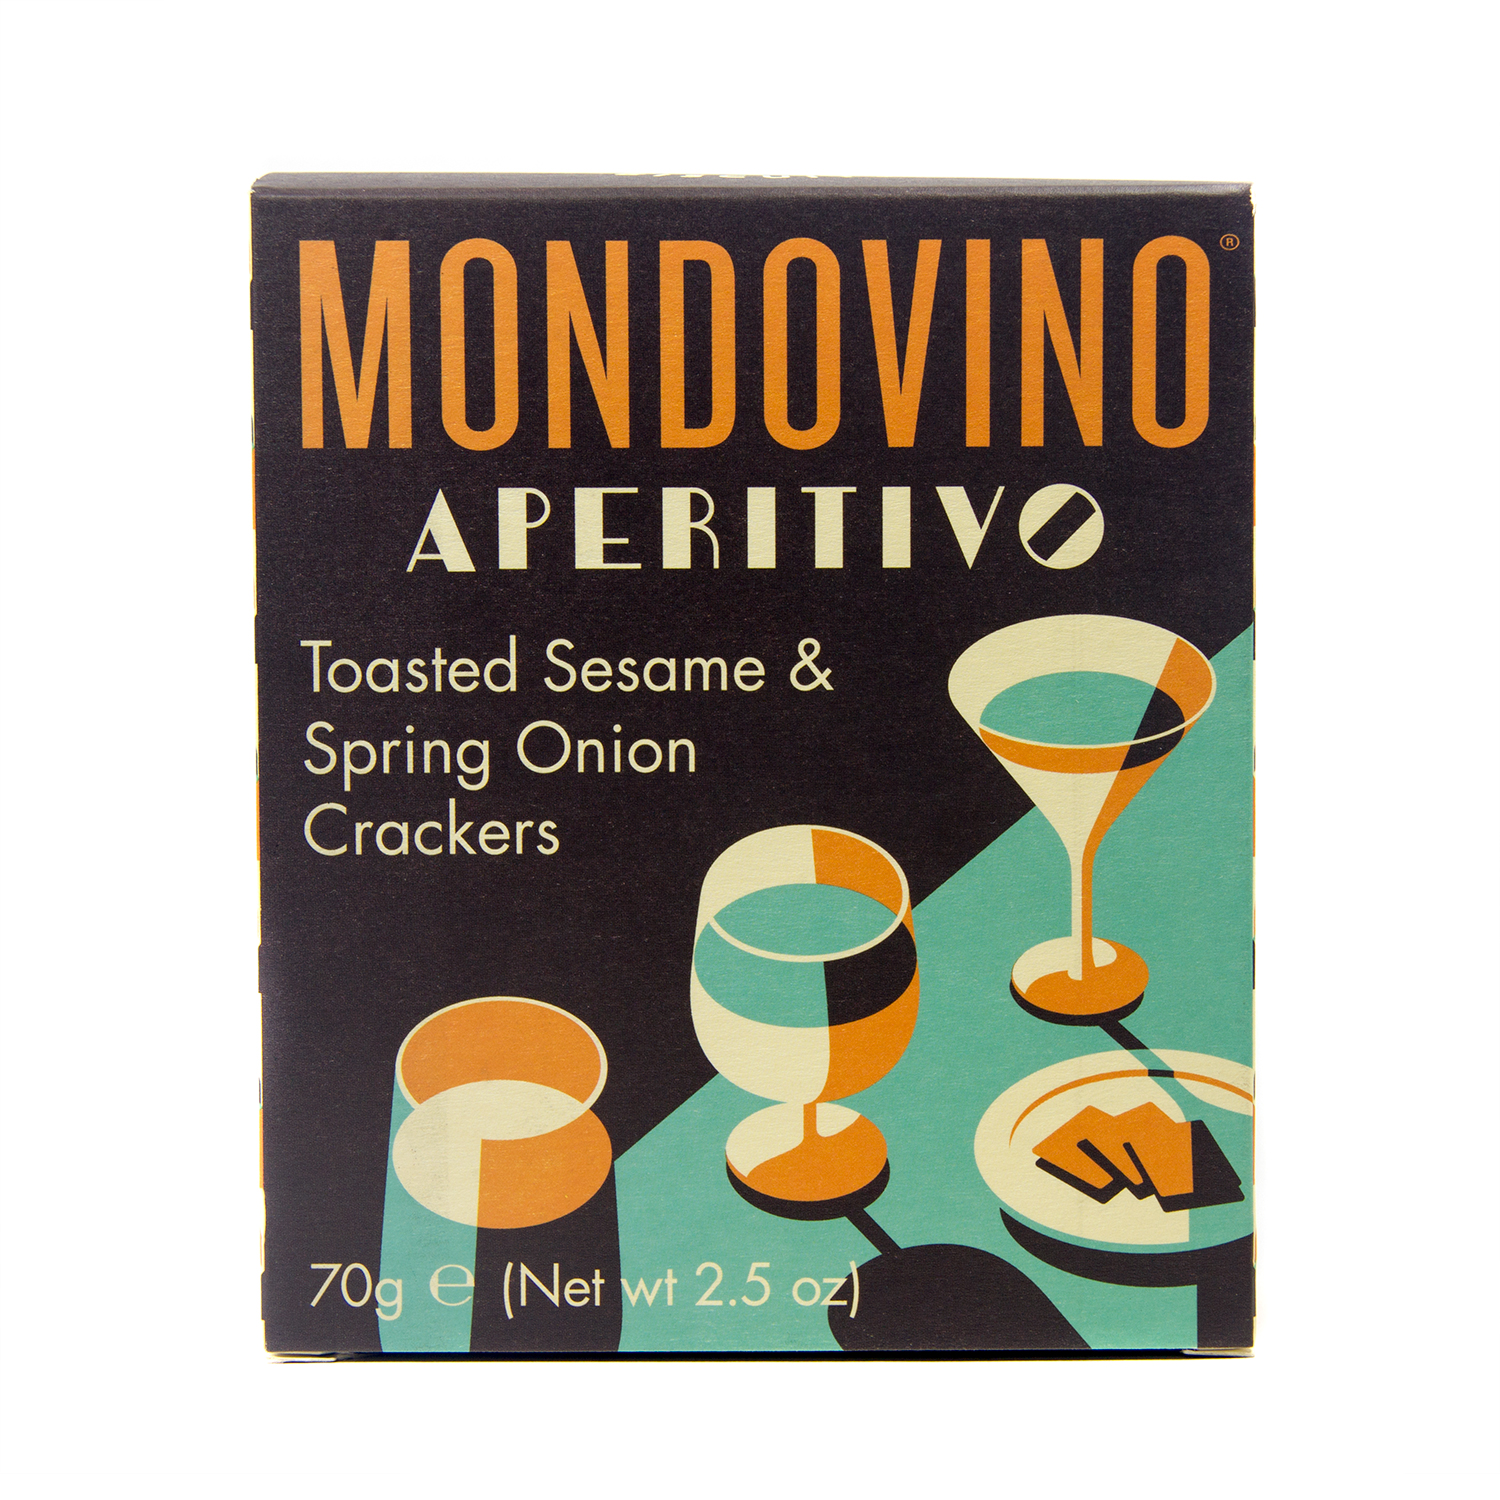 Mondovino Aperitivo Toasted Sesame And Spring Onion Crackers